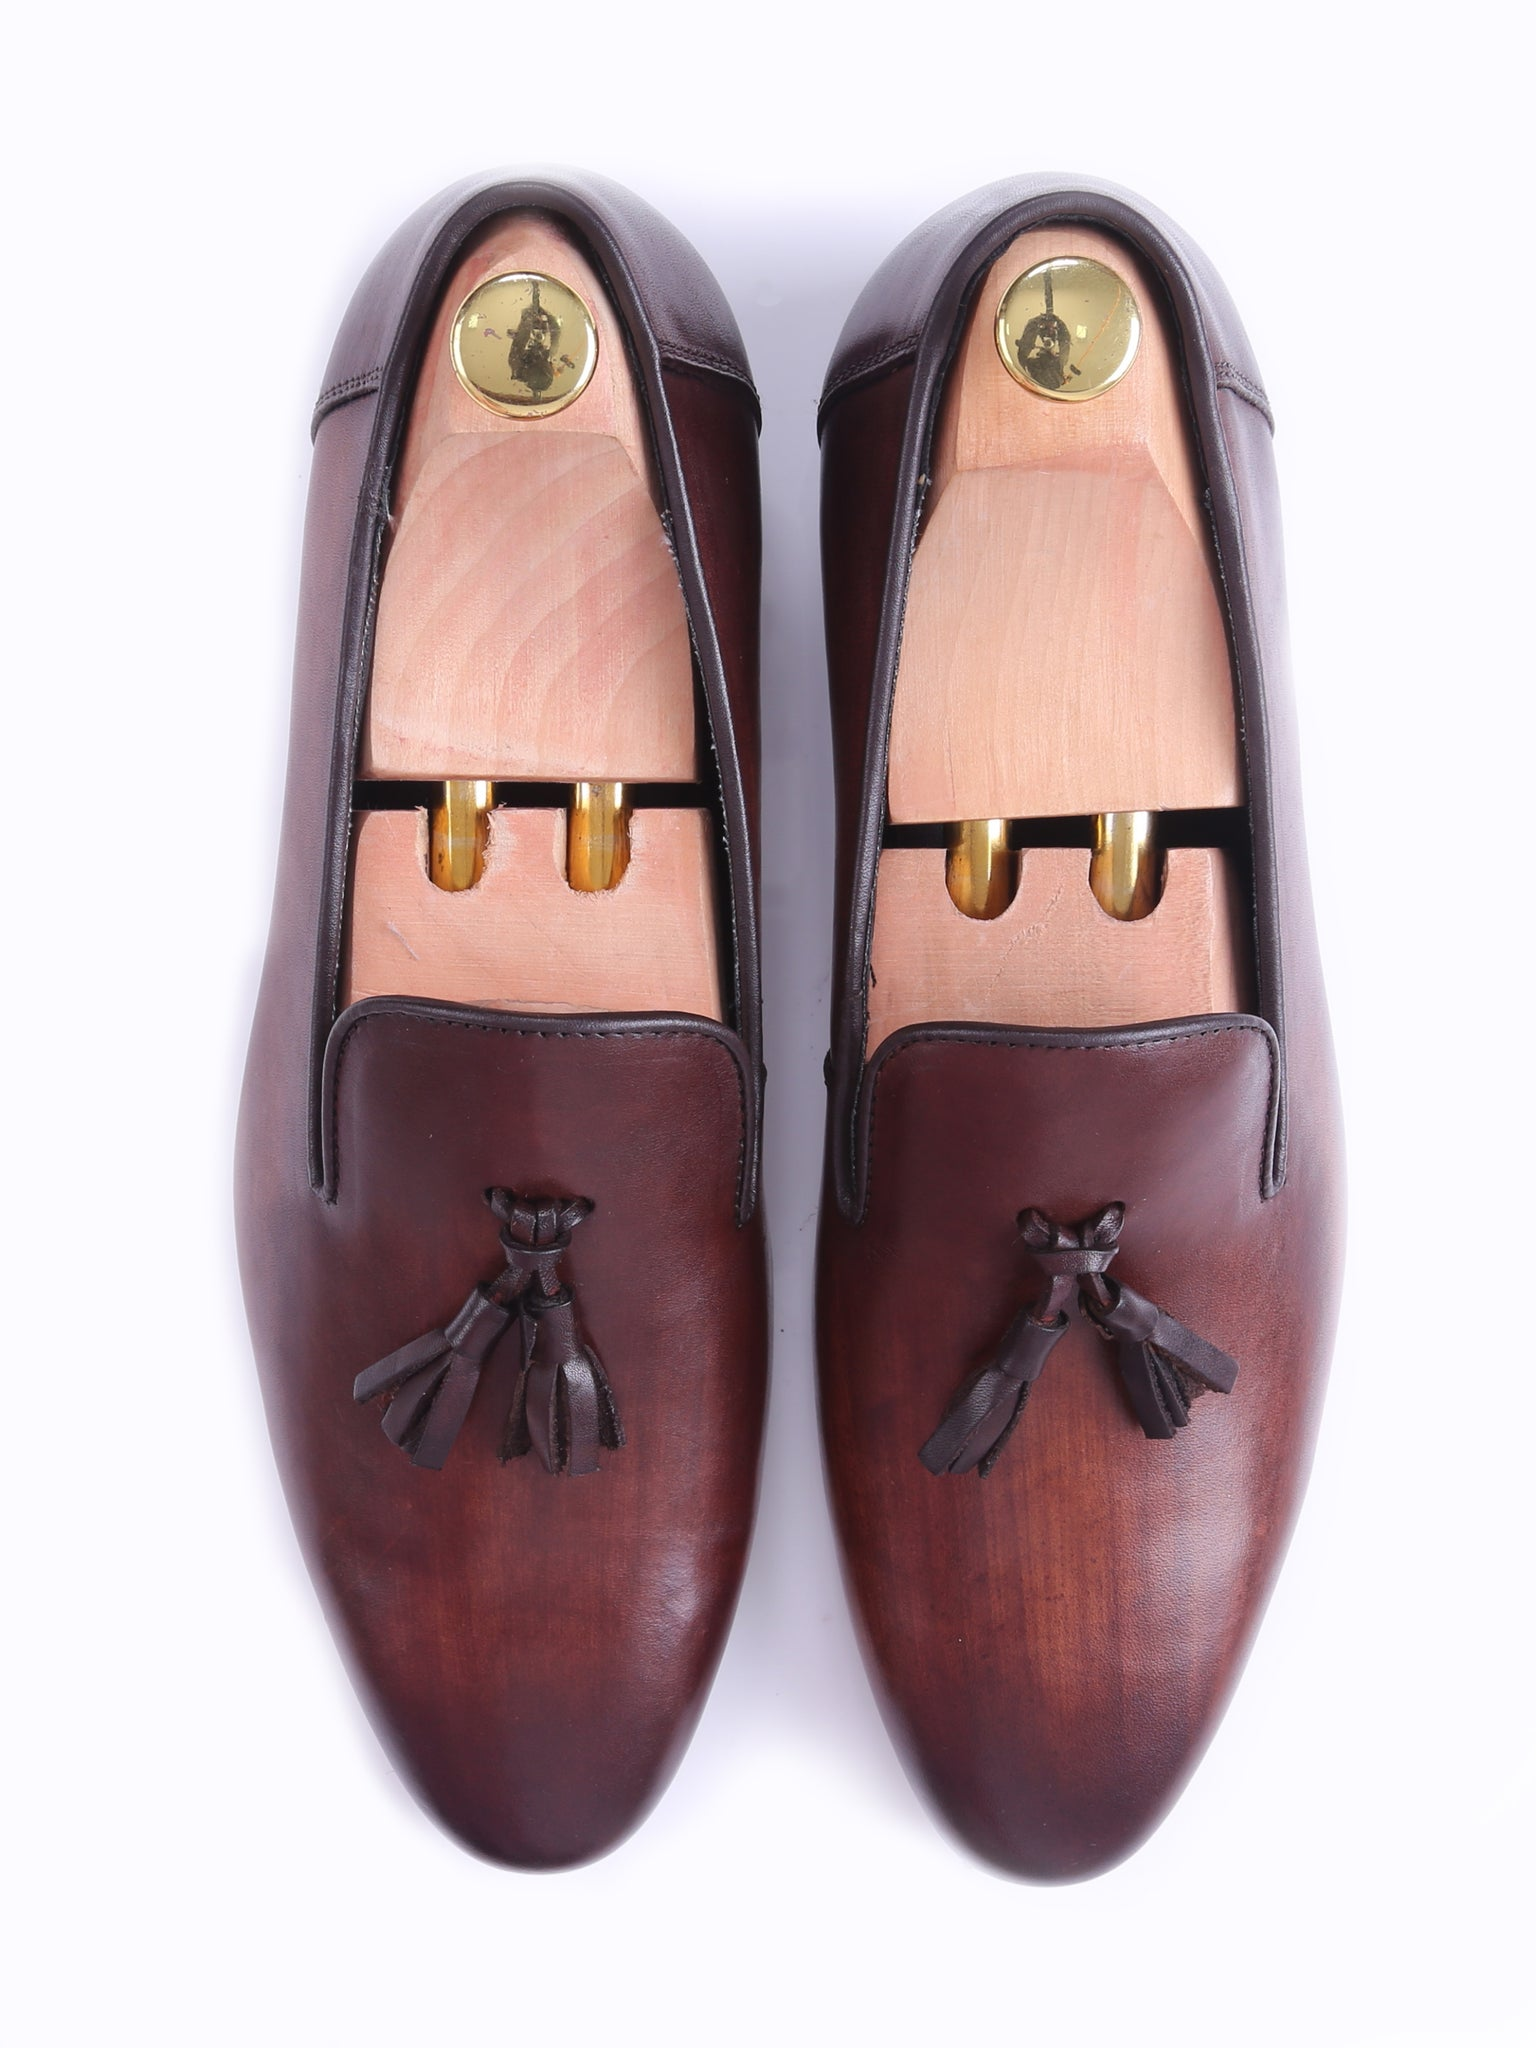 Shoes Loafer Slipper - Dark Brown (Hand Painted Patina)